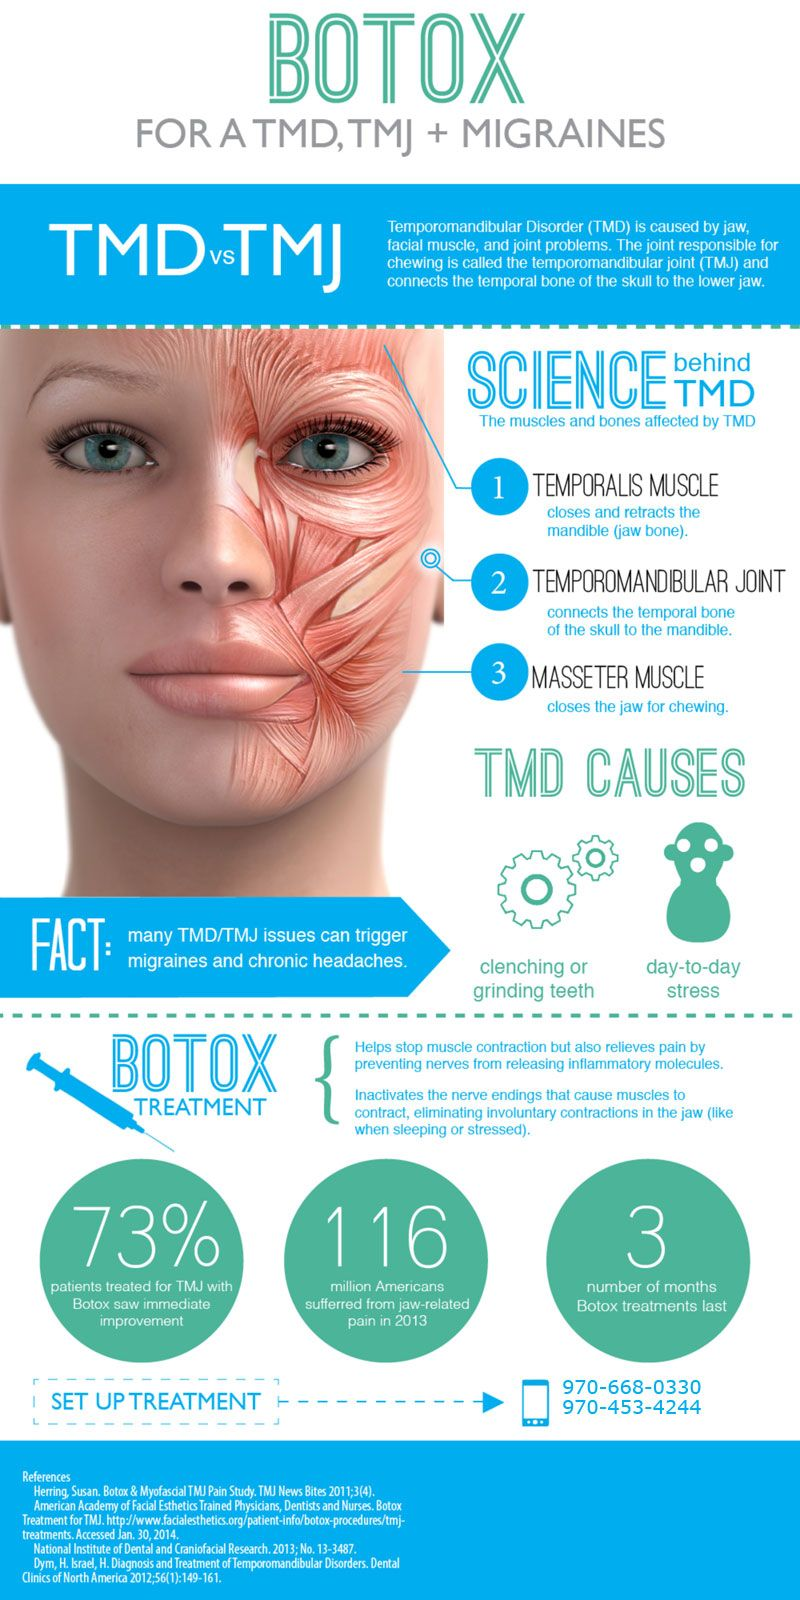 Botox for TMD